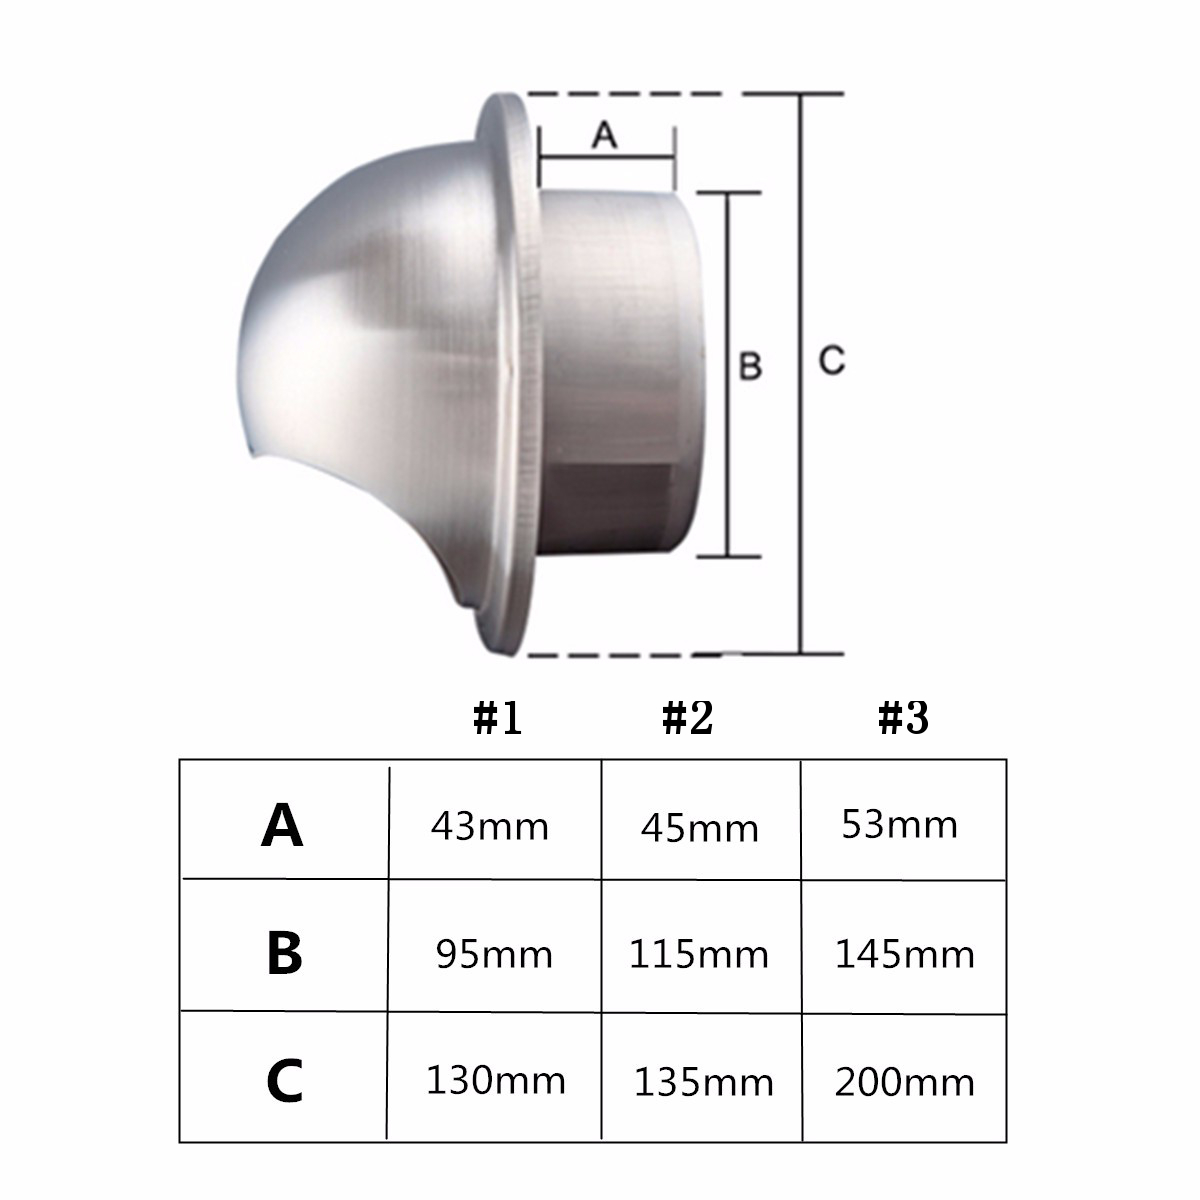 Wall Air Vent Stainless Steel Metal Exhaust Grille Duct Ventilation Cover Outlet